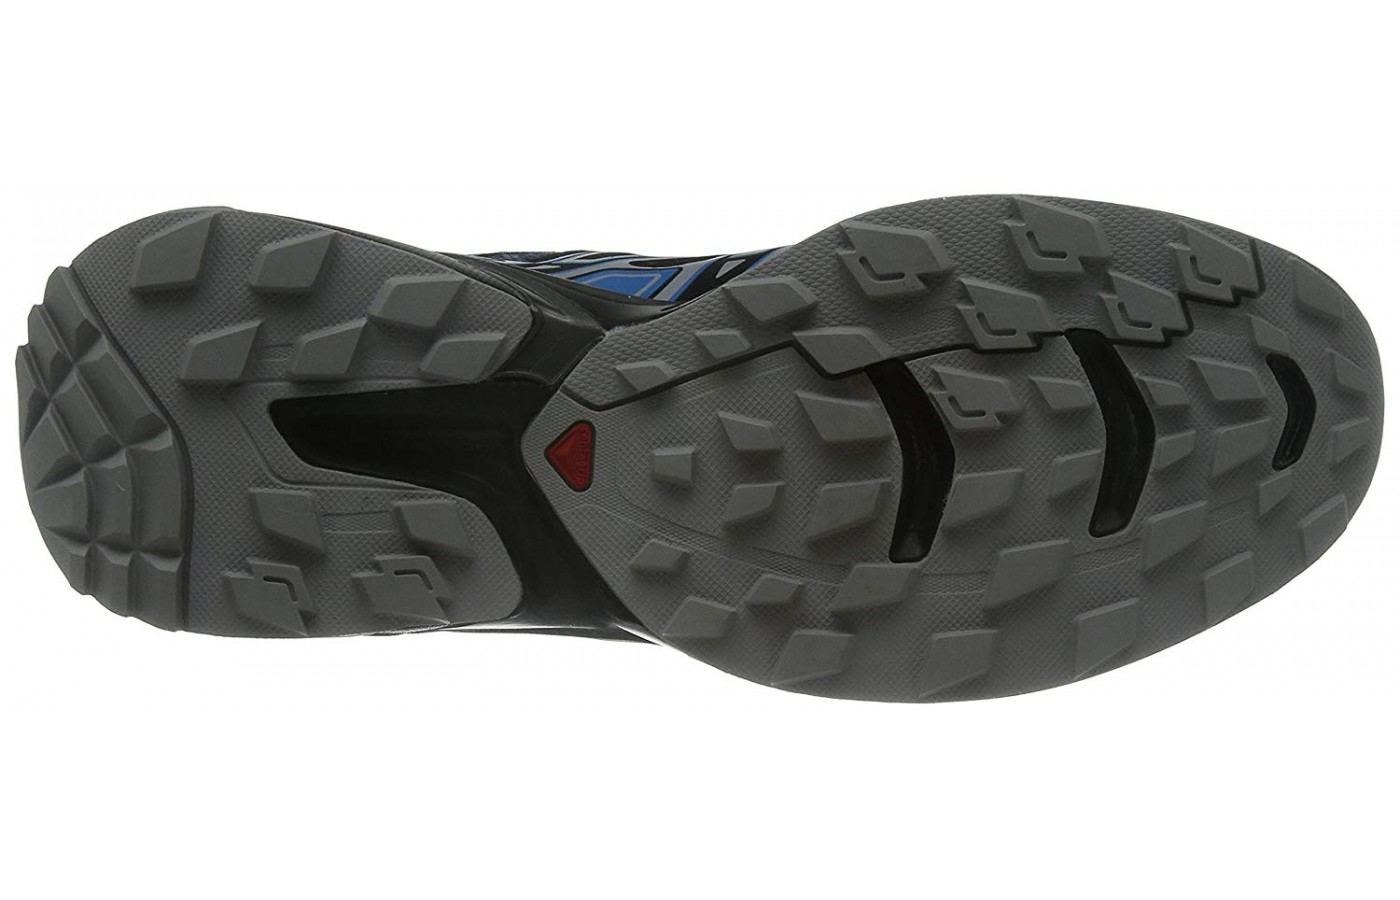 The compounds are designed for dry and wet weather, called 'high abrasion' and 'wet traction' contagrip